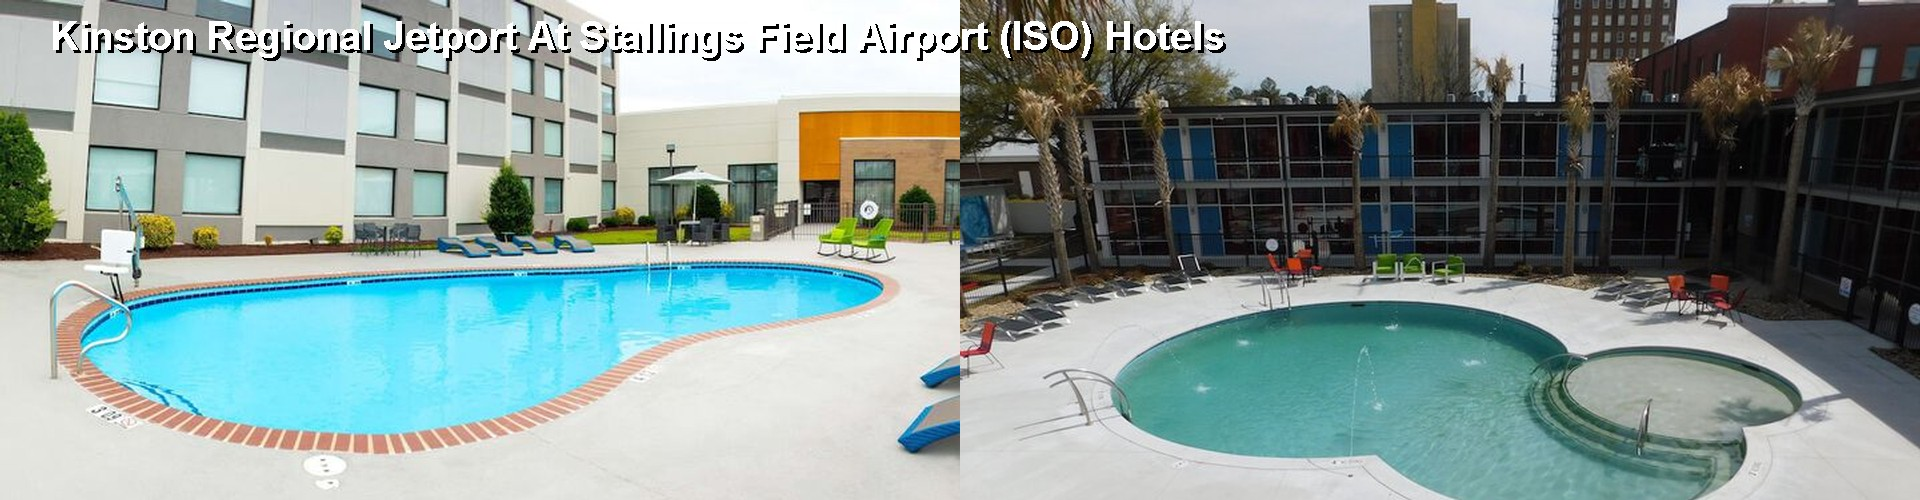 5 Best Hotels near Kinston Regional Jetport At Stallings Field Airport (ISO)